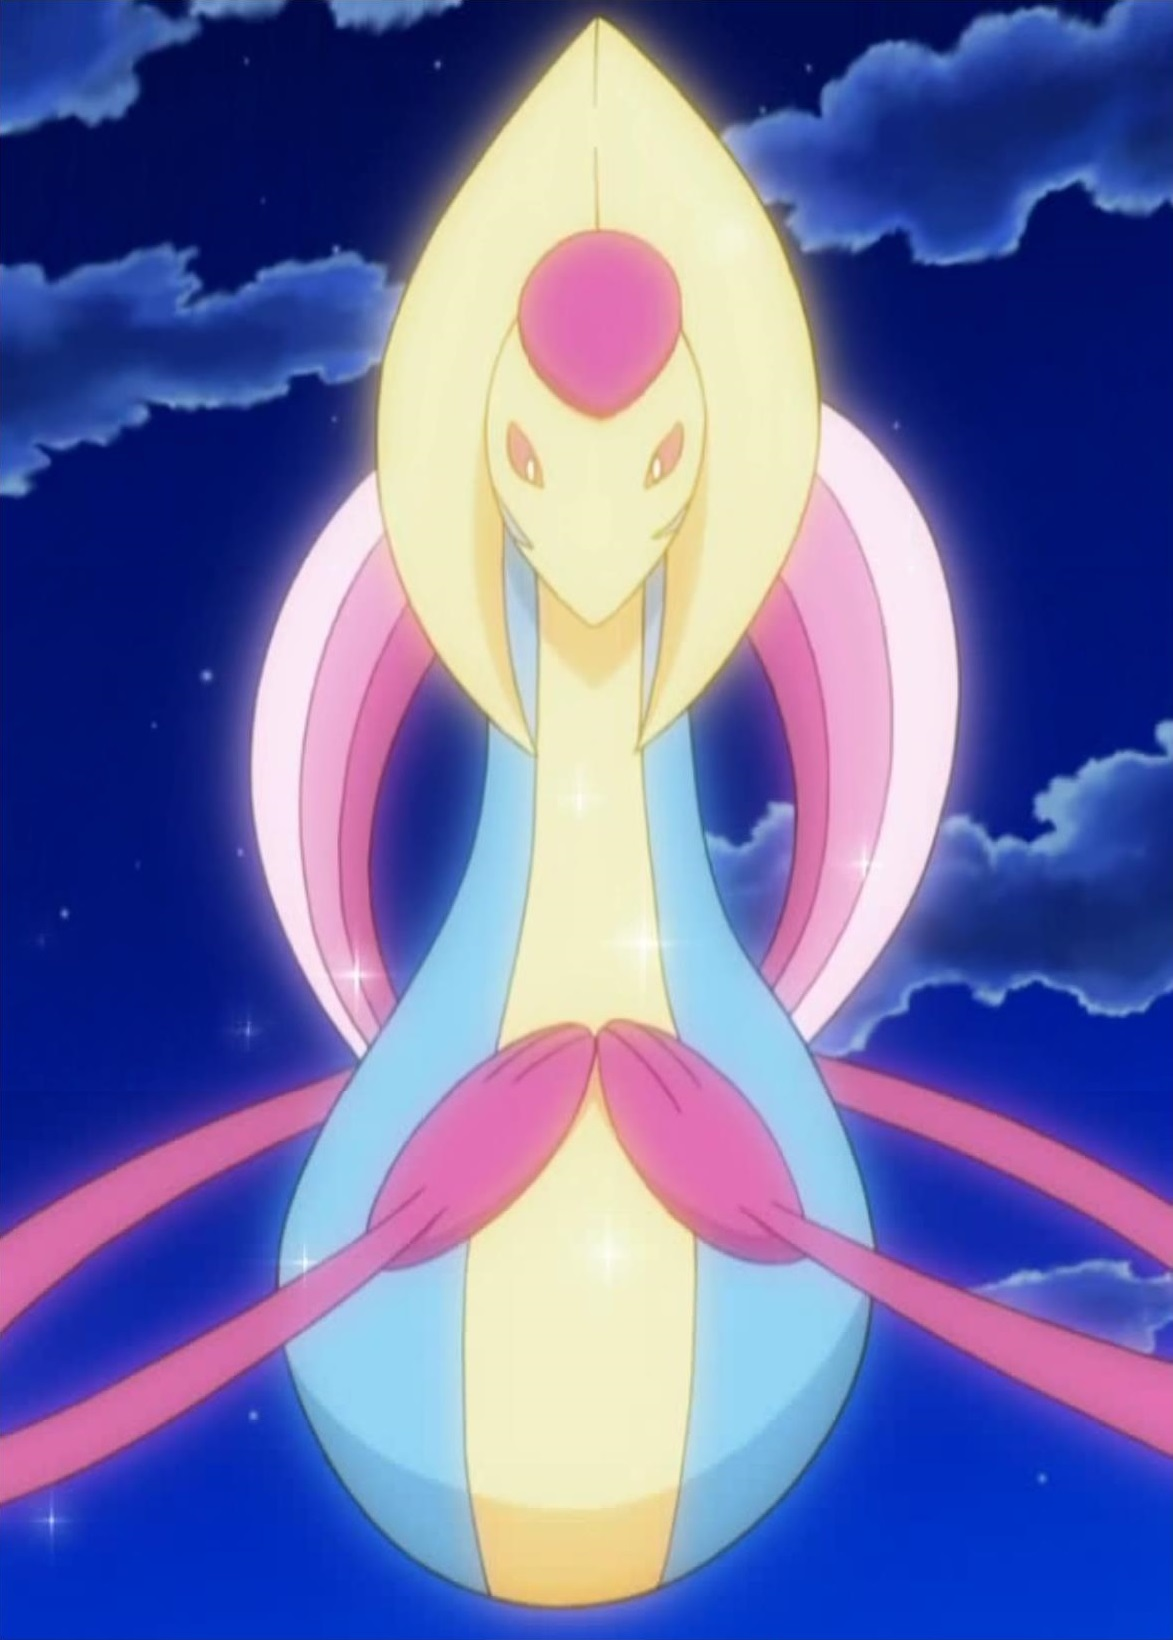 Cresselia Anime Pok 233 Mon Wiki Fandom Powered By Wikia